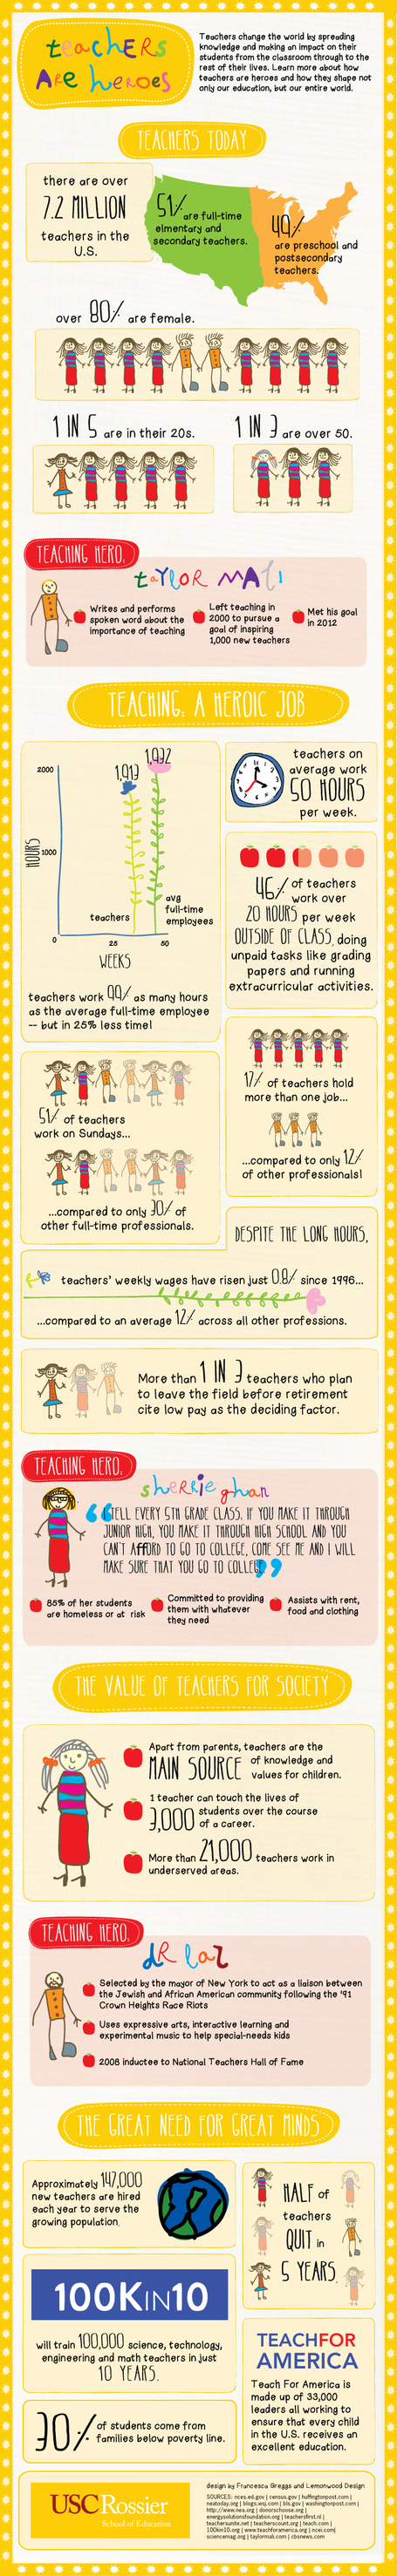 20 Things To Know About The Current State Of Teaching [Infographic] | Teacher Learning Networks | Scoop.it